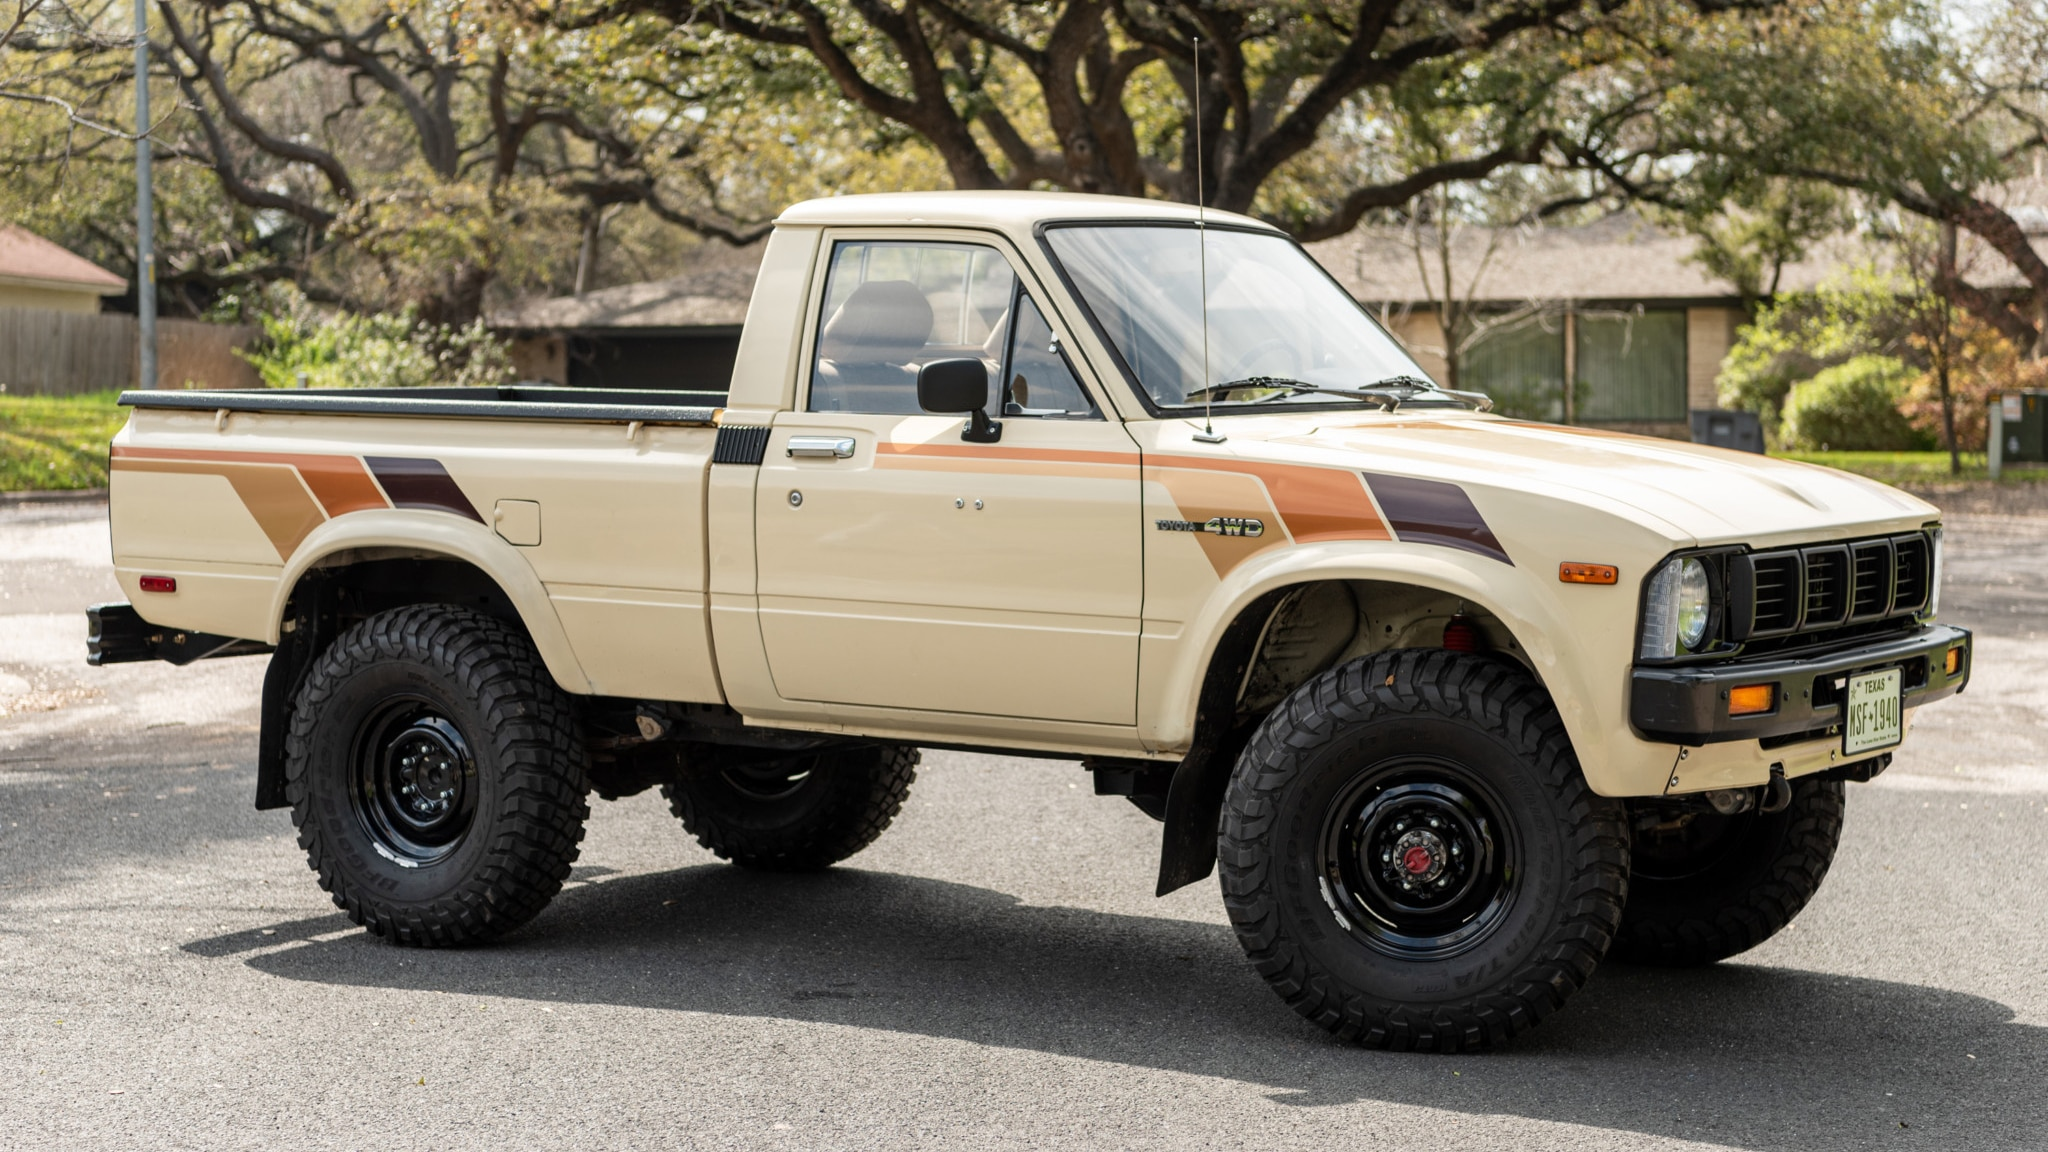 Beyond Perfect 1983 Toyota Pickup Is A Flannel Ready 4x4 Fantasy Machine